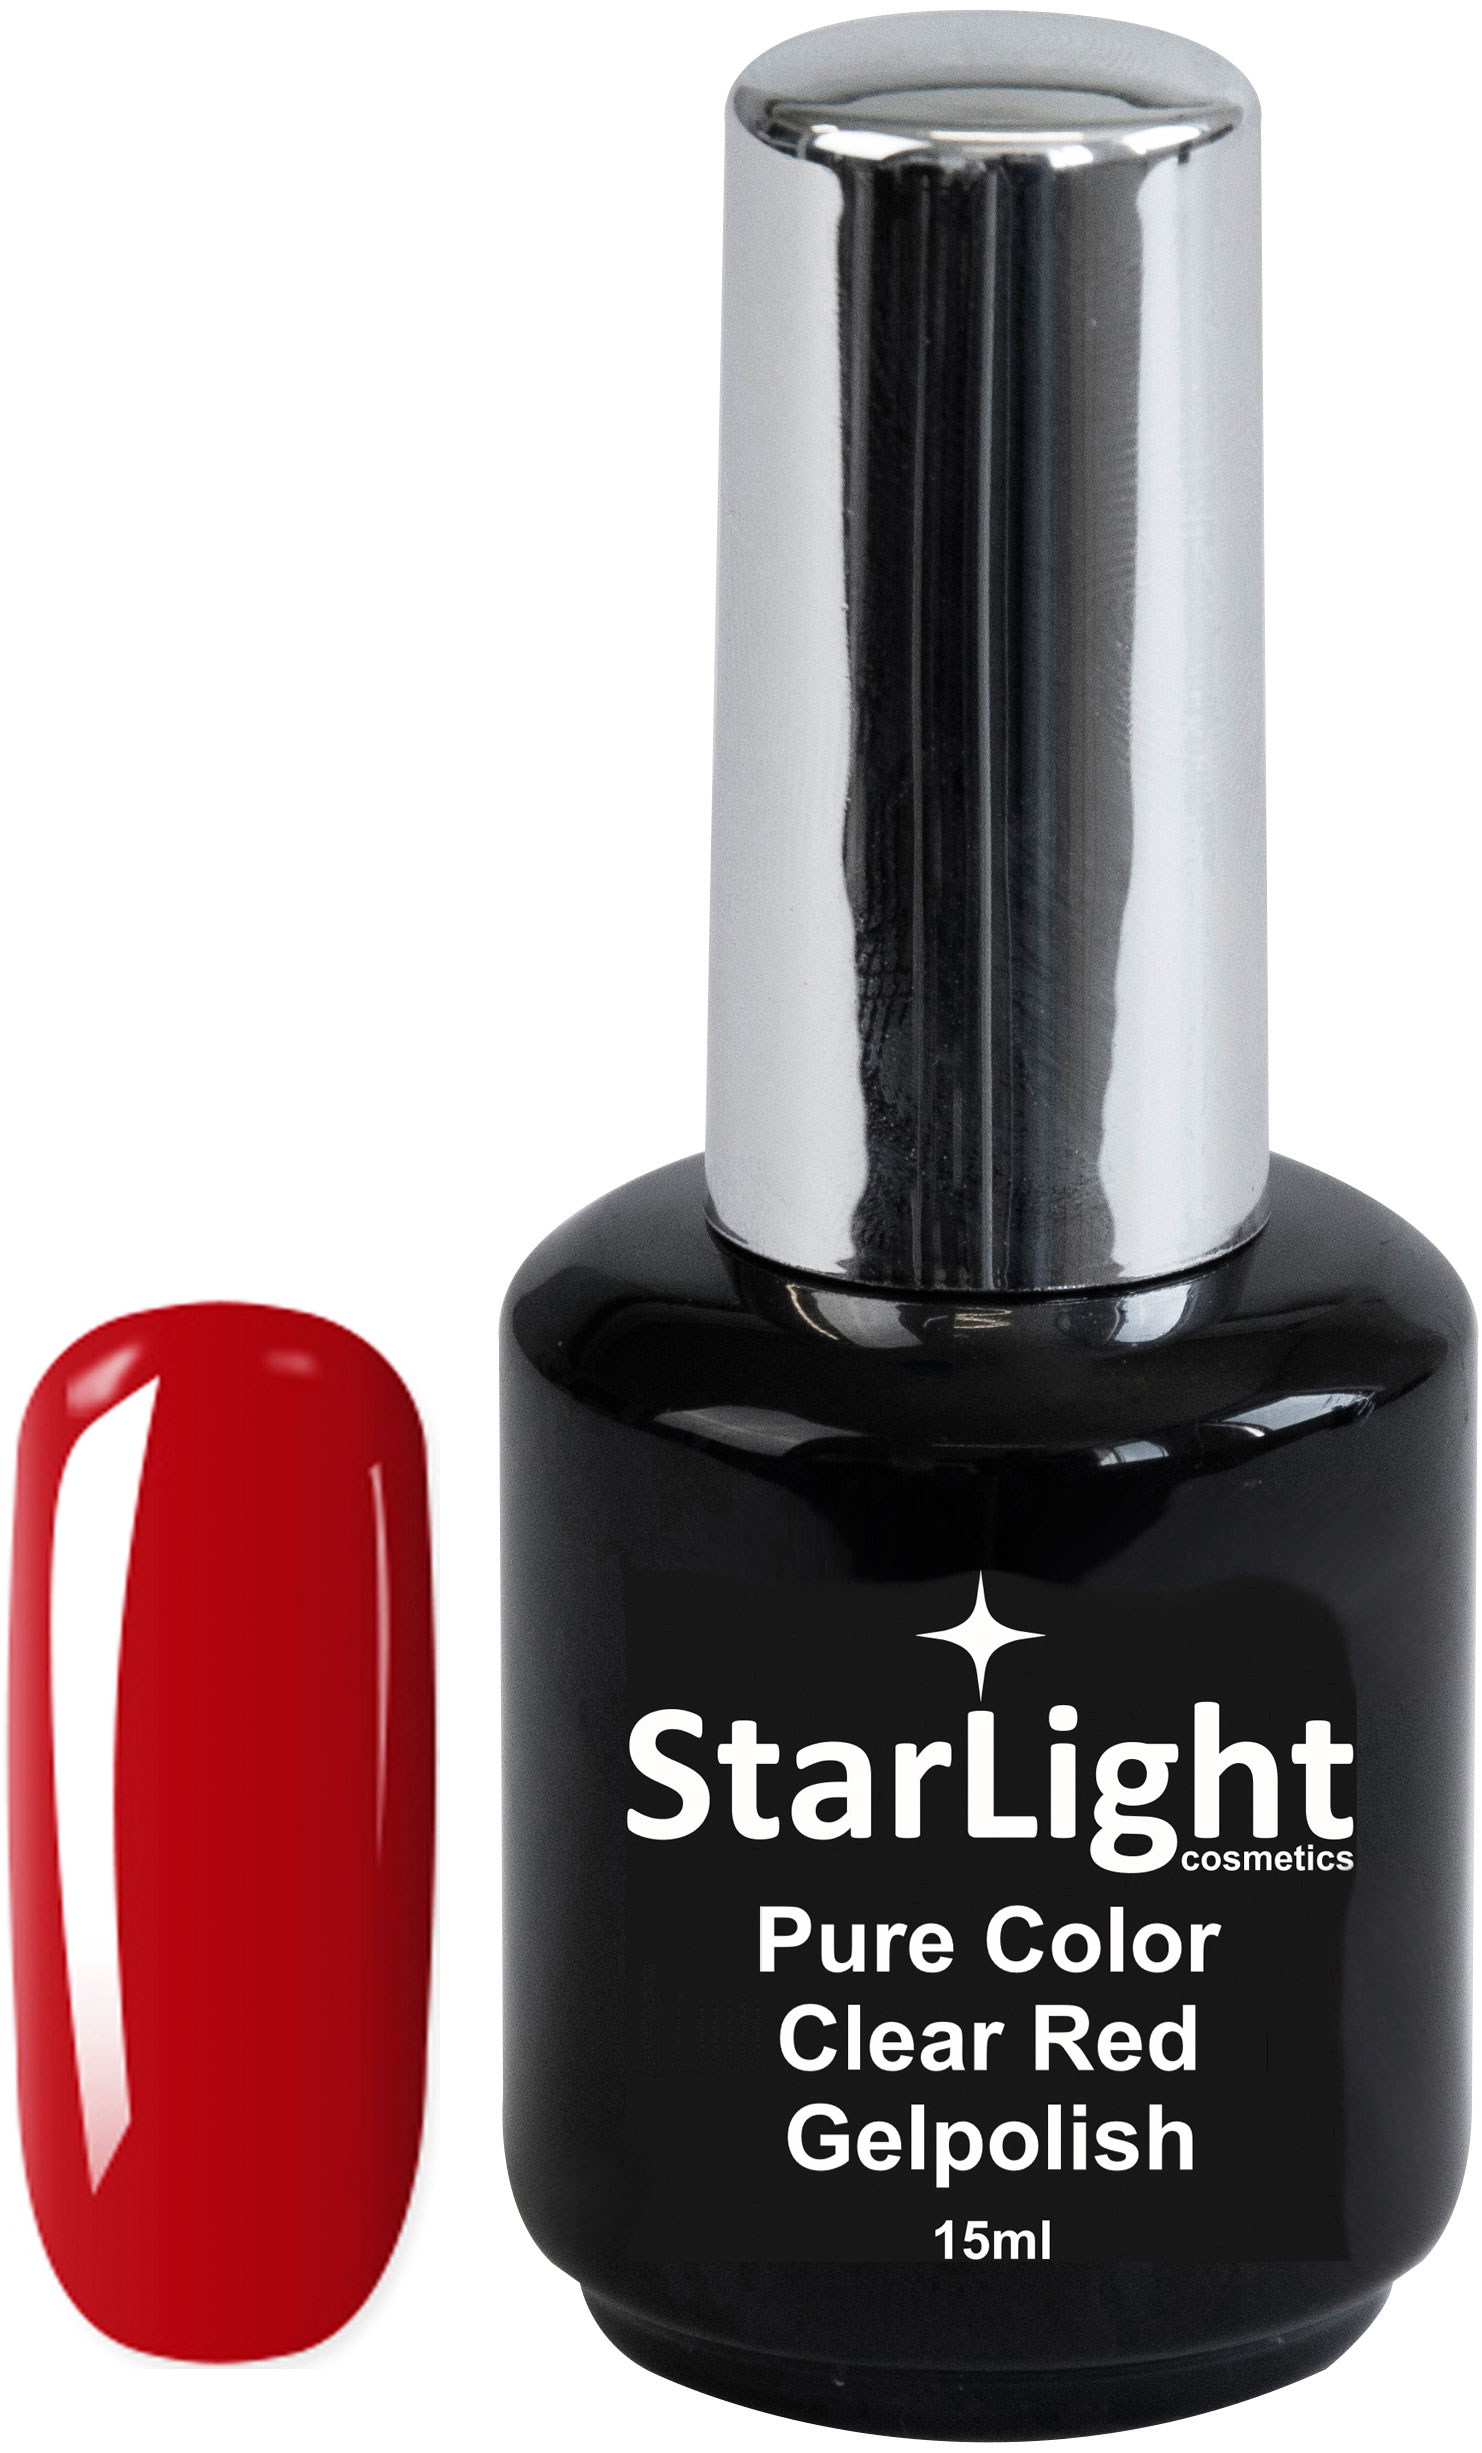 Naglar Gelpolish Pure Color Clear Red - 15 ml